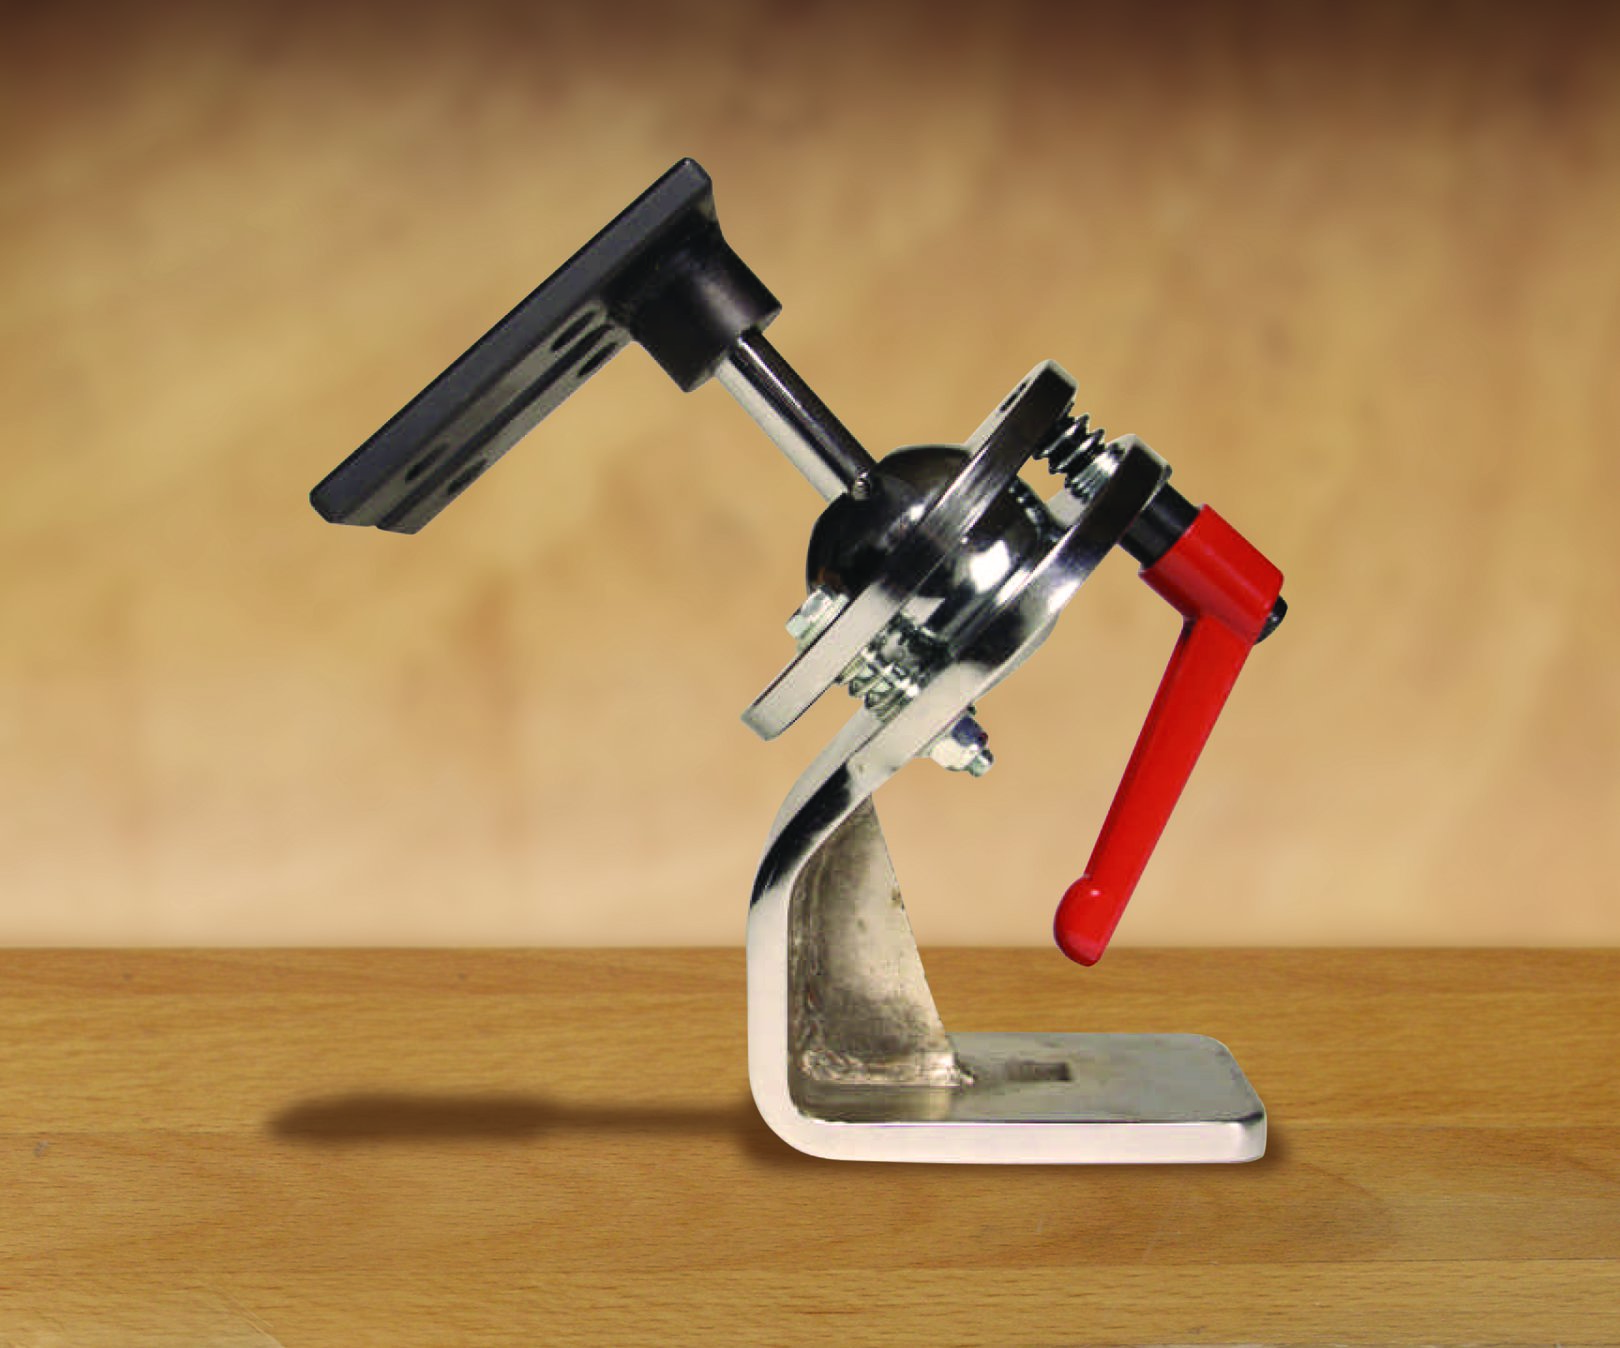 An adjustable holding device by Jerry-Rig that pivots and locks.